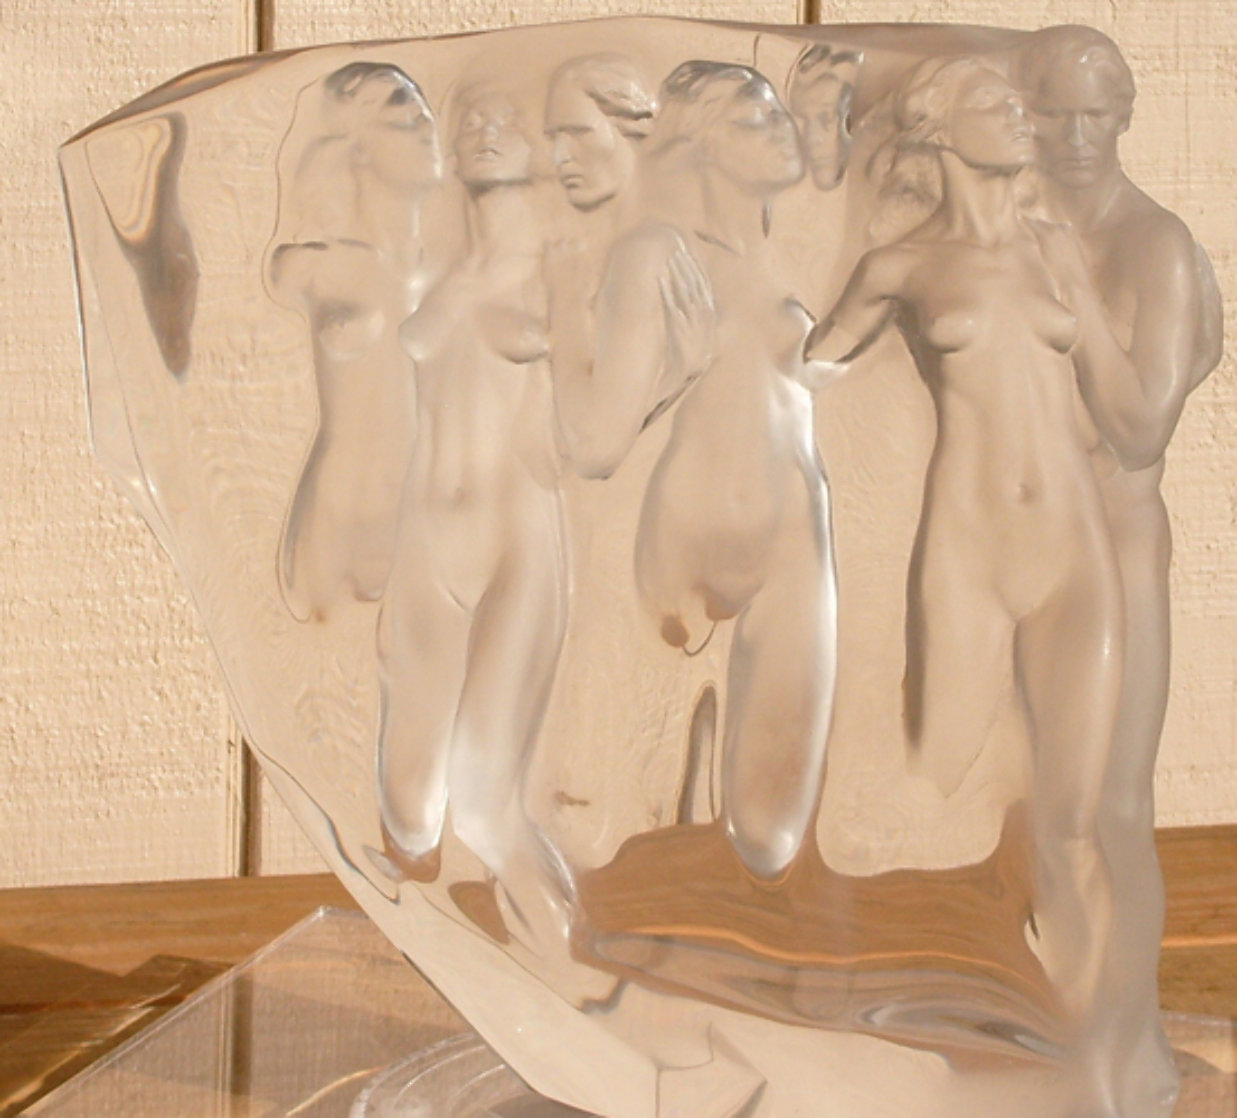 Gerontion Acrylic Sculpture 1982 12 in Sculpture by Frederick Hart